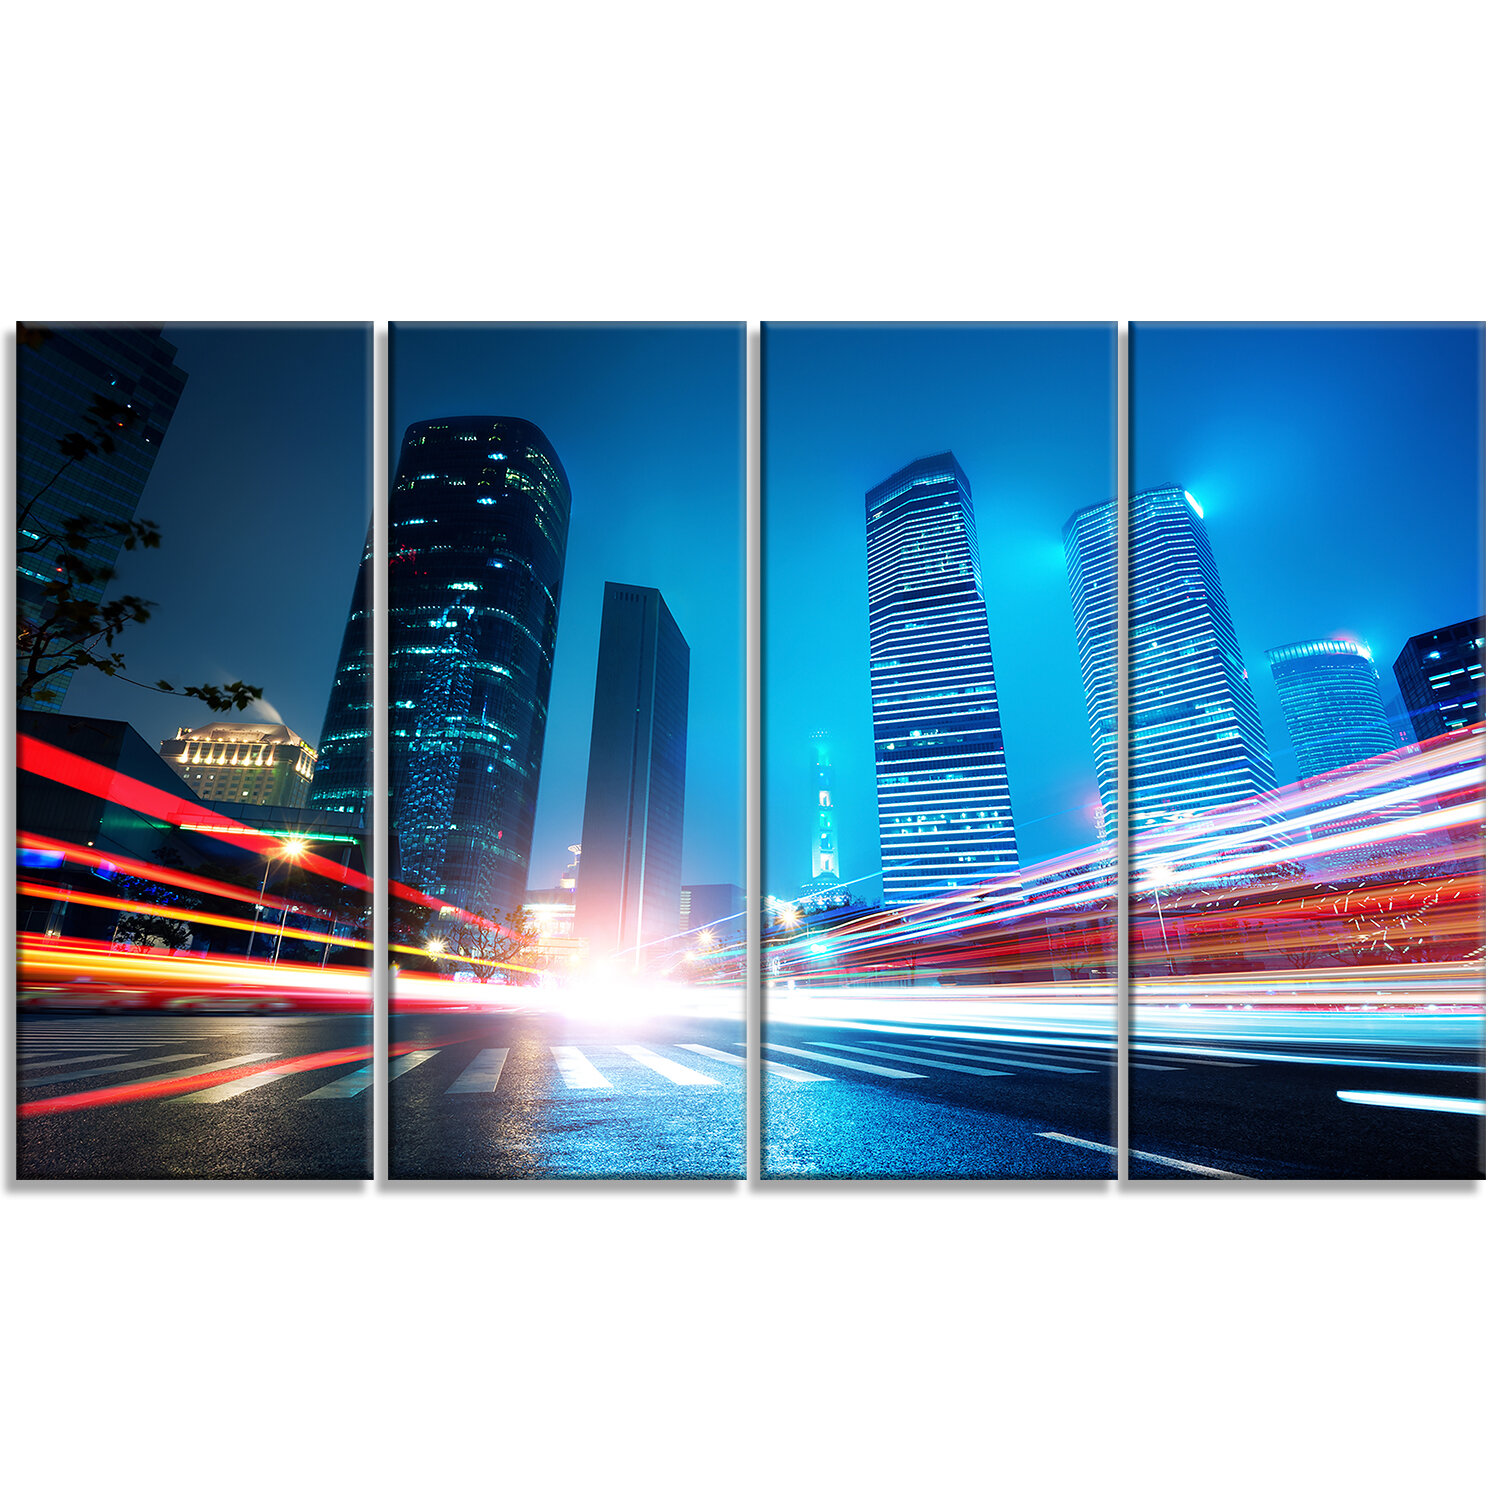 Designart Shanghai Lujiazui Finance At Night 4 Piece Graphic Art On Wrapped Canvas Set Wayfair